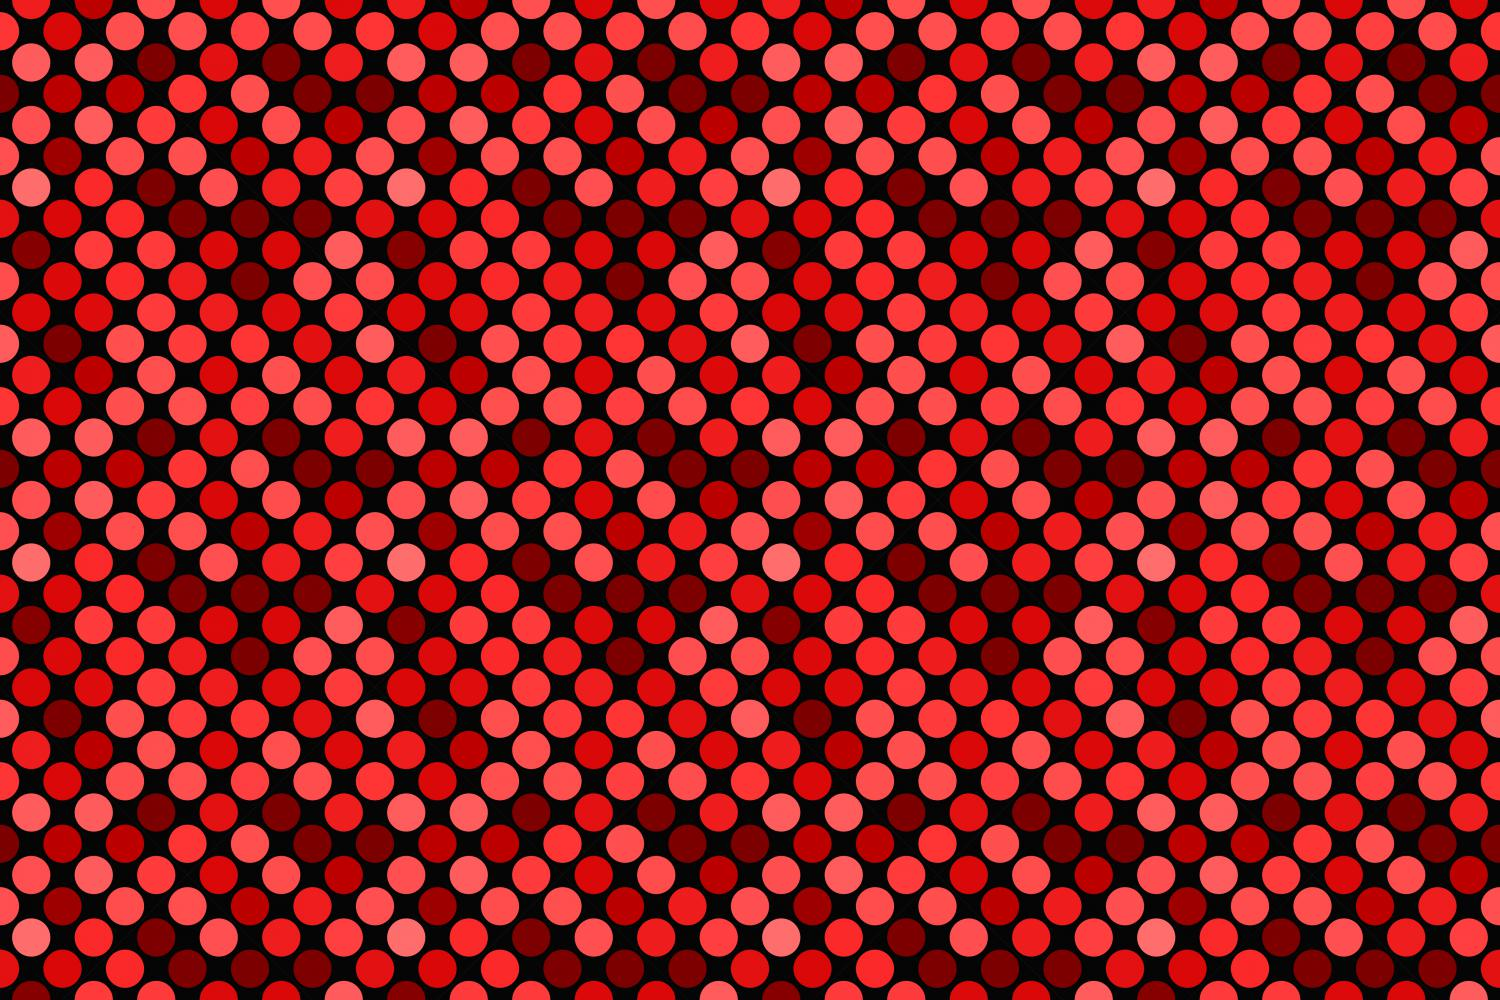 24 Seamless Red Dot Patterns example image 12